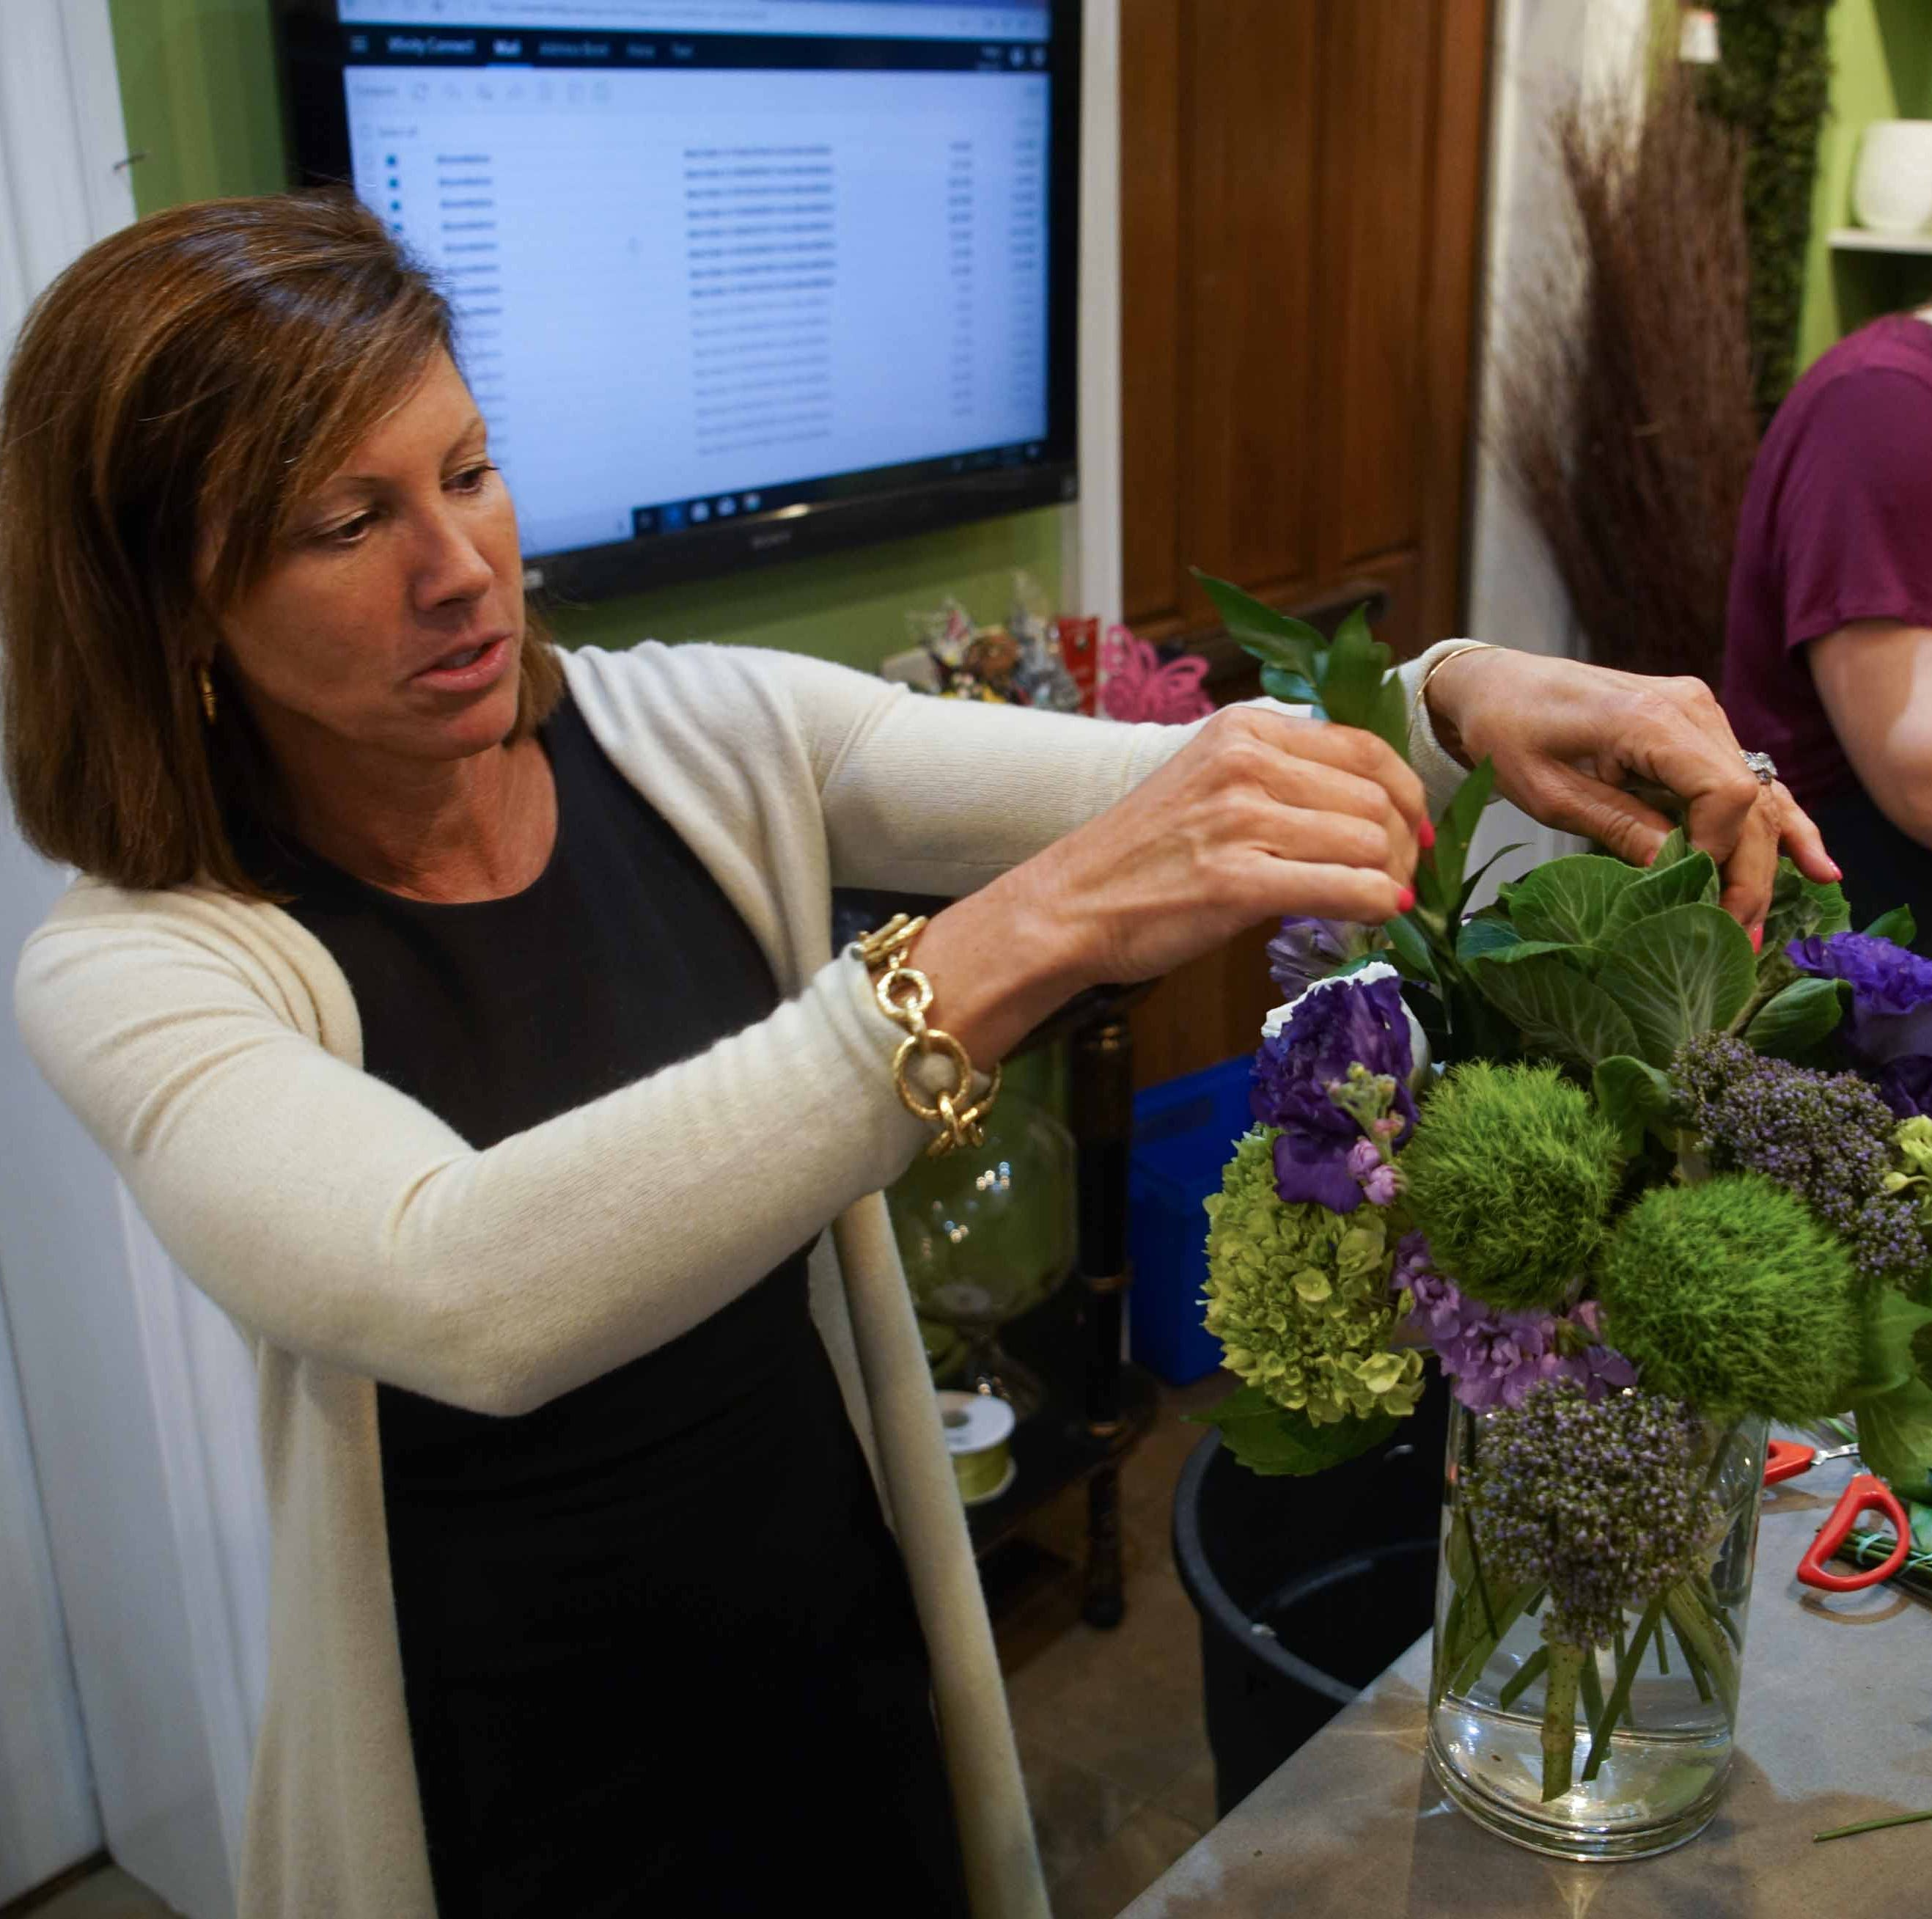 Mother's Day business at Petals Flower Shop crushed by road closure on Rt. 100